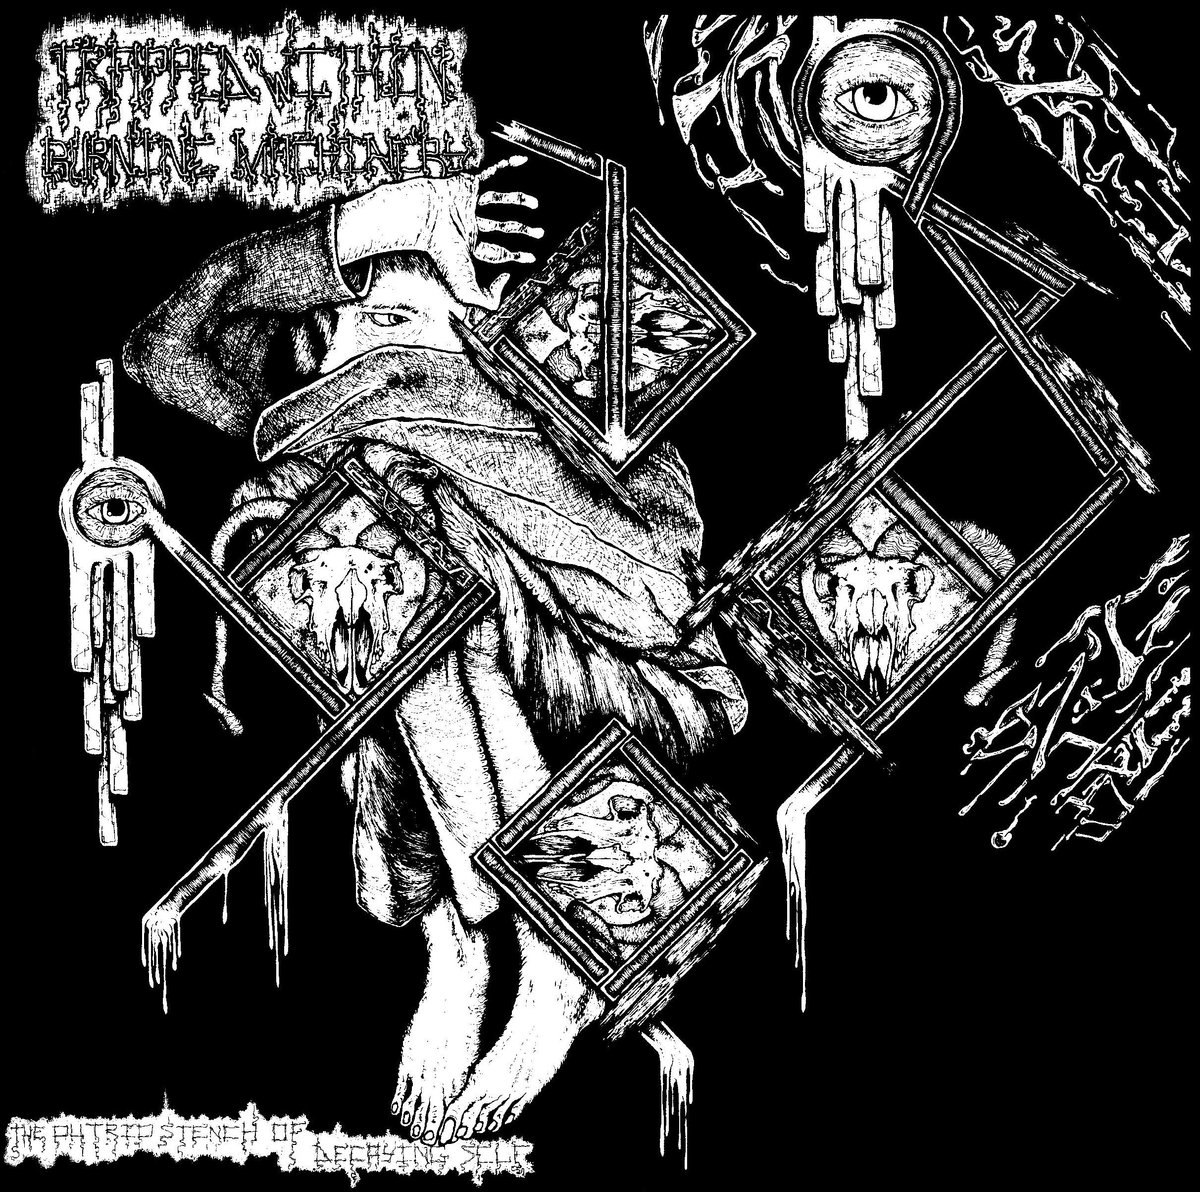 Trapped Within Burning Machinery - Putrid Stench of Decaying Self